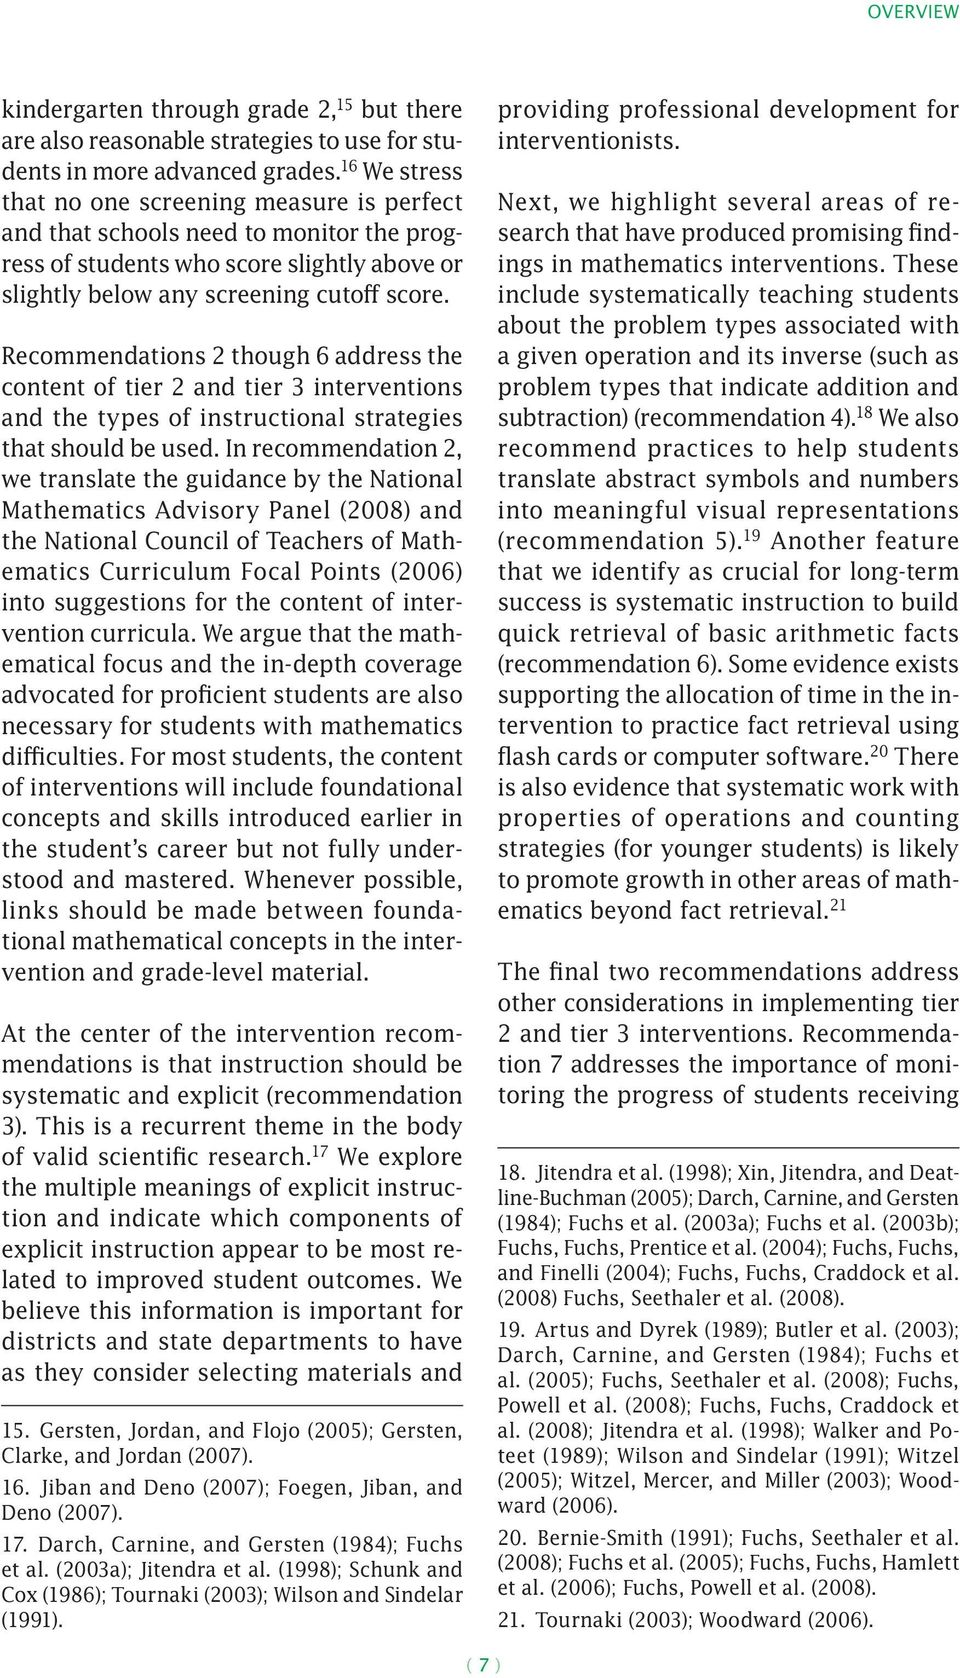 Recommendations 2 though 6 address the content of tier 2 and tier 3 interventions and the types of instructional strategies that should be used.